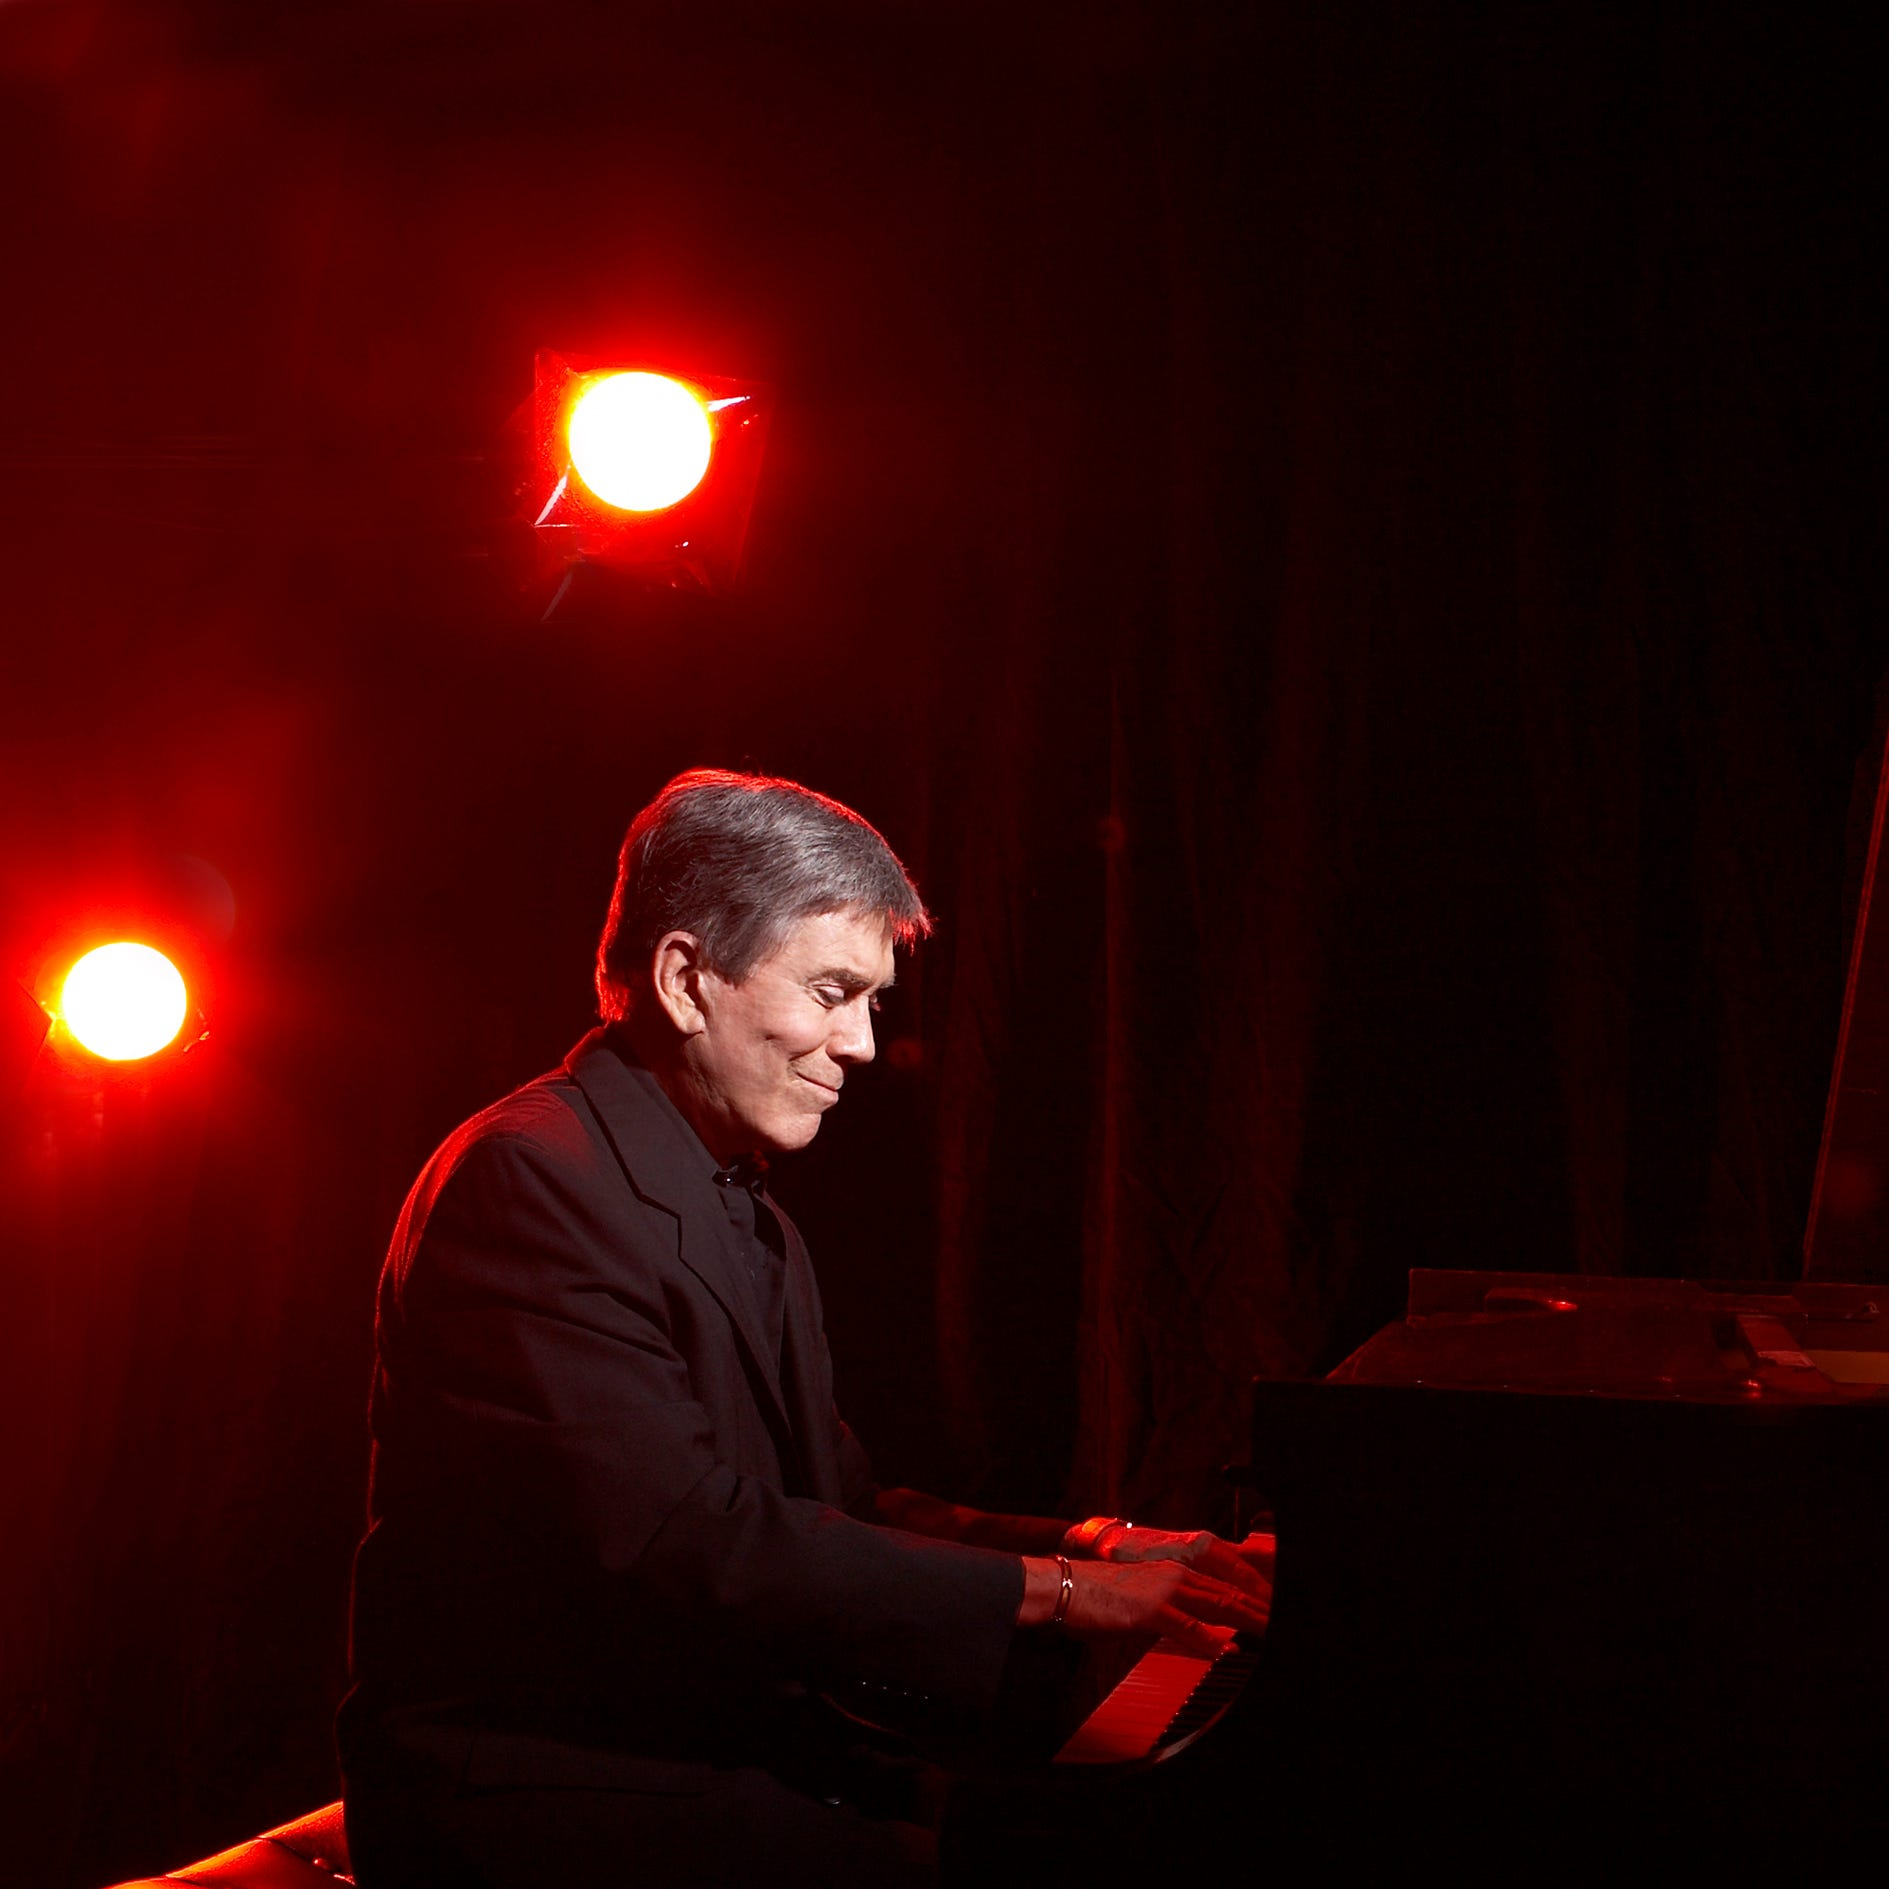 Jazz pianist Ronny Whyte coming to Center for the Arts at Kayenta